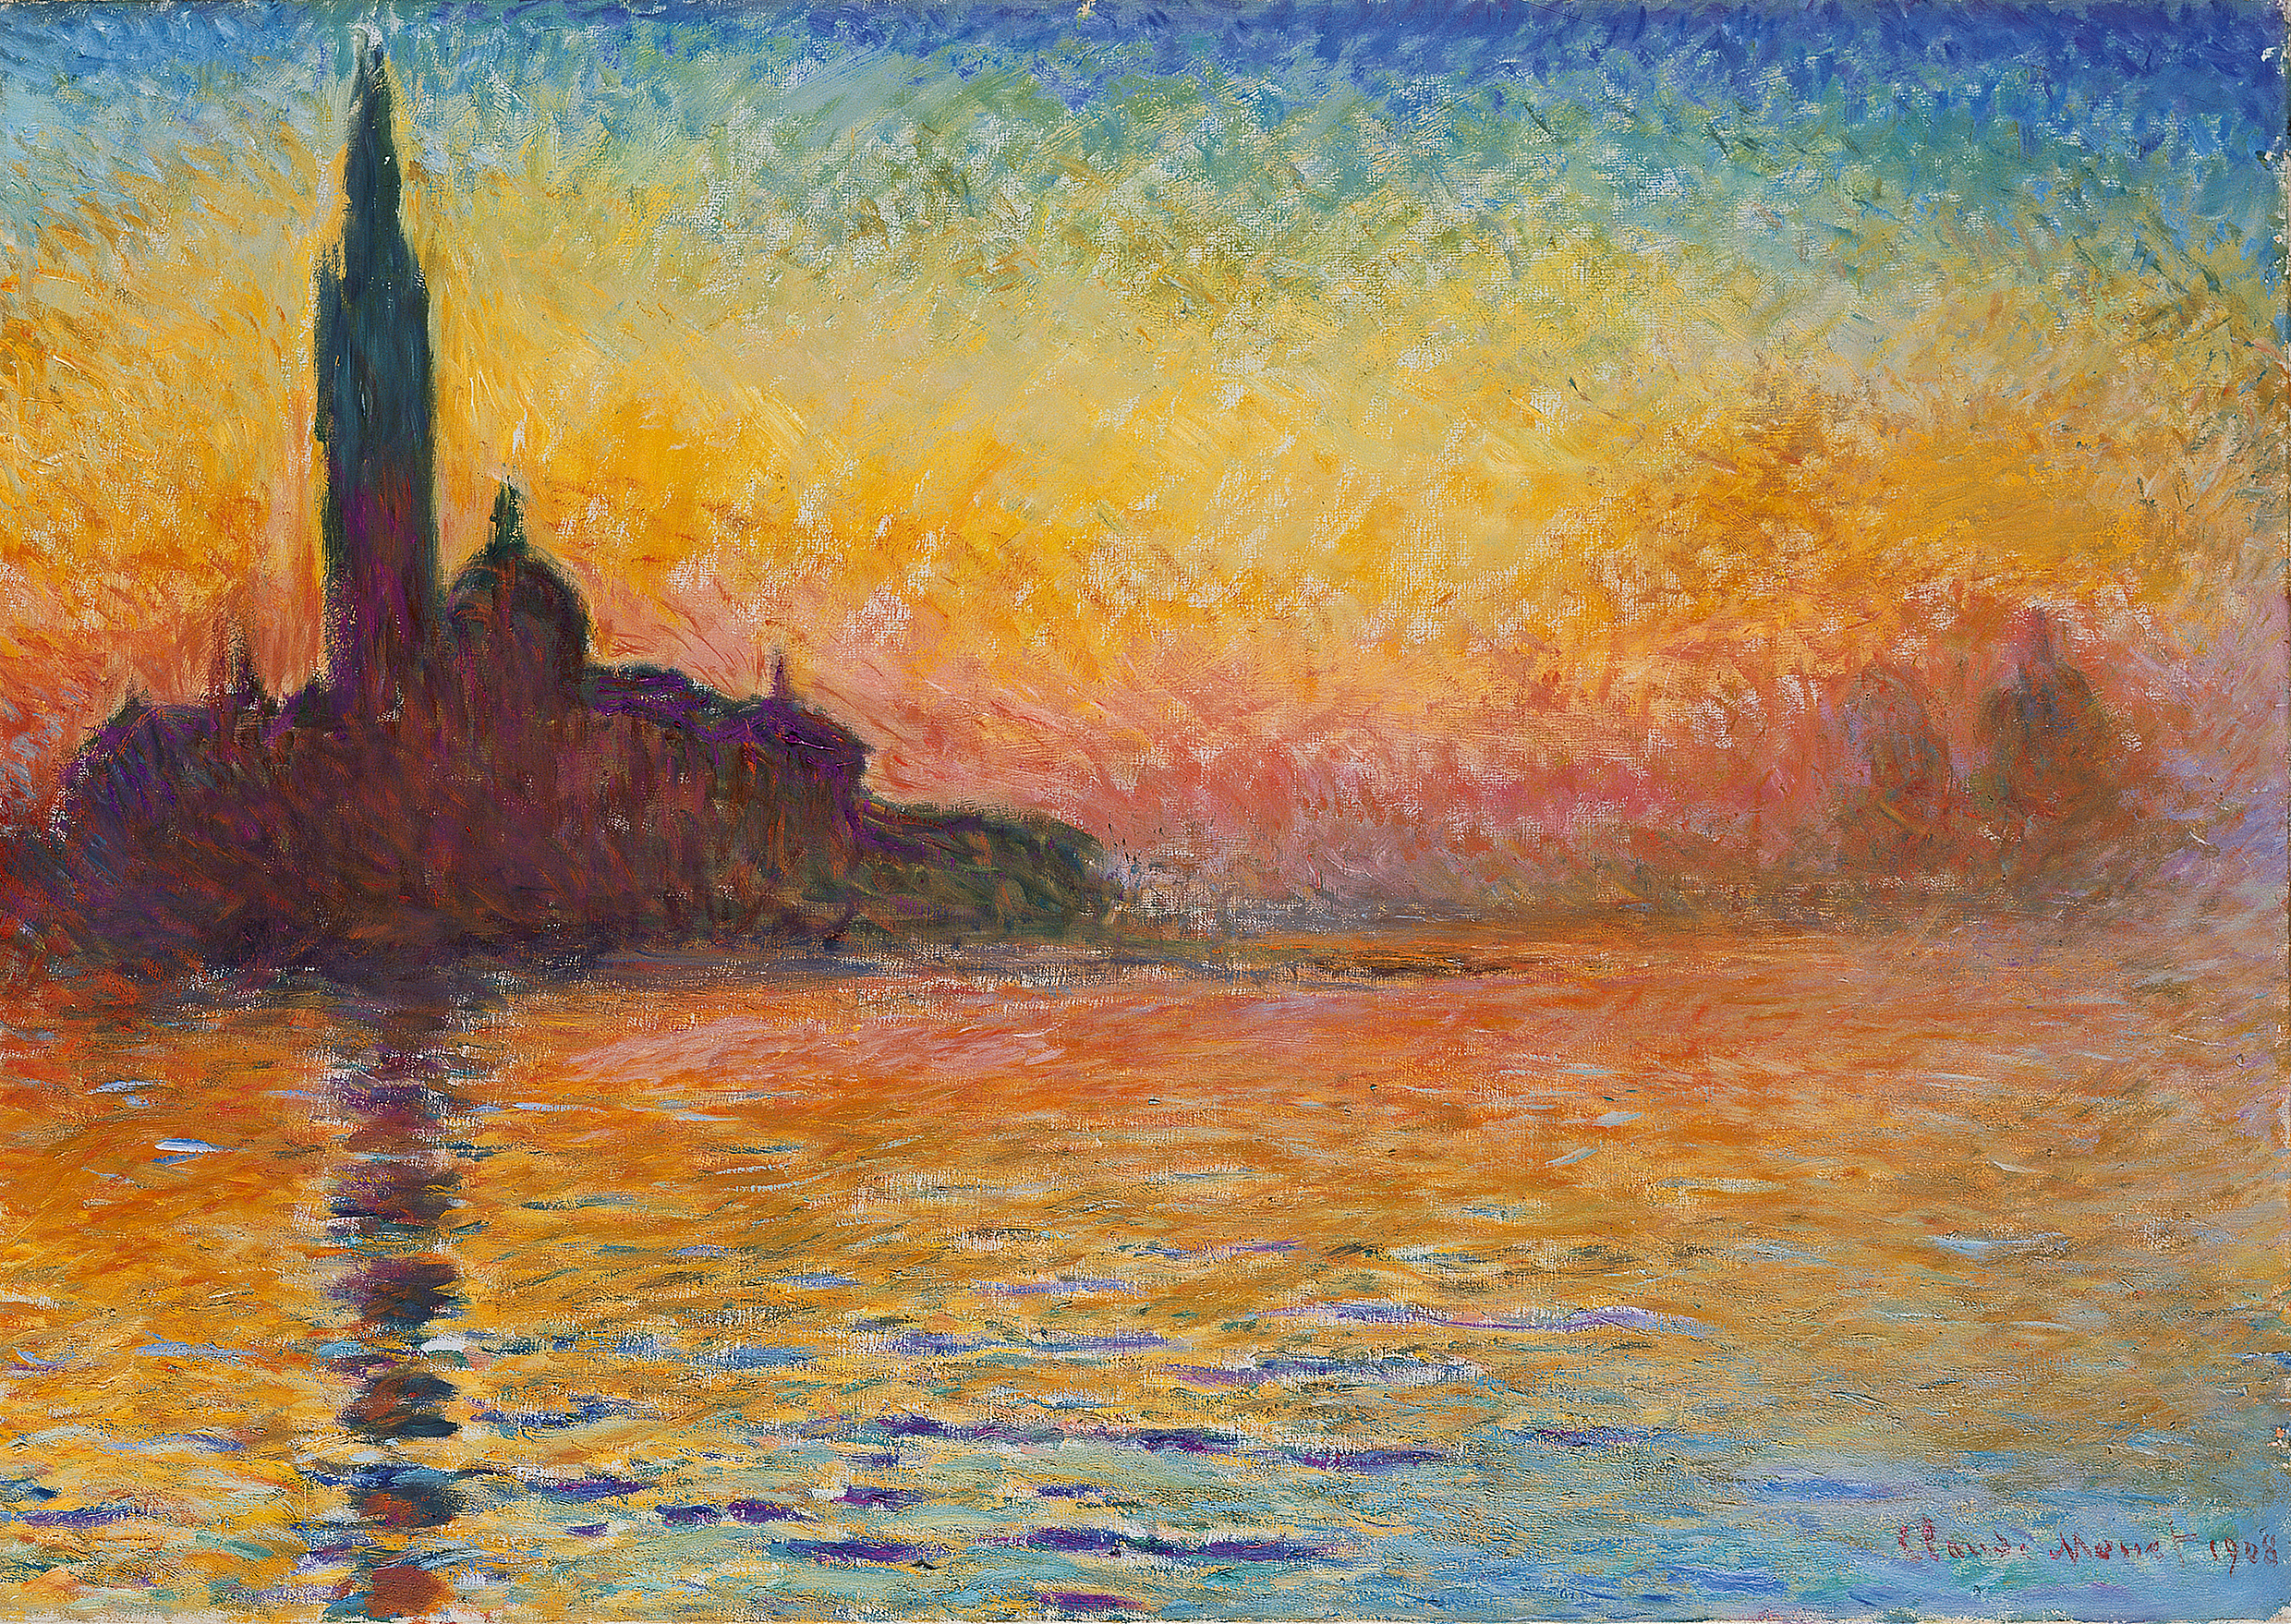 claude monet Find the latest shows, biography, and artworks for sale by claude monet a founding member of the impressionist movement in the late 1800s, claude monet.